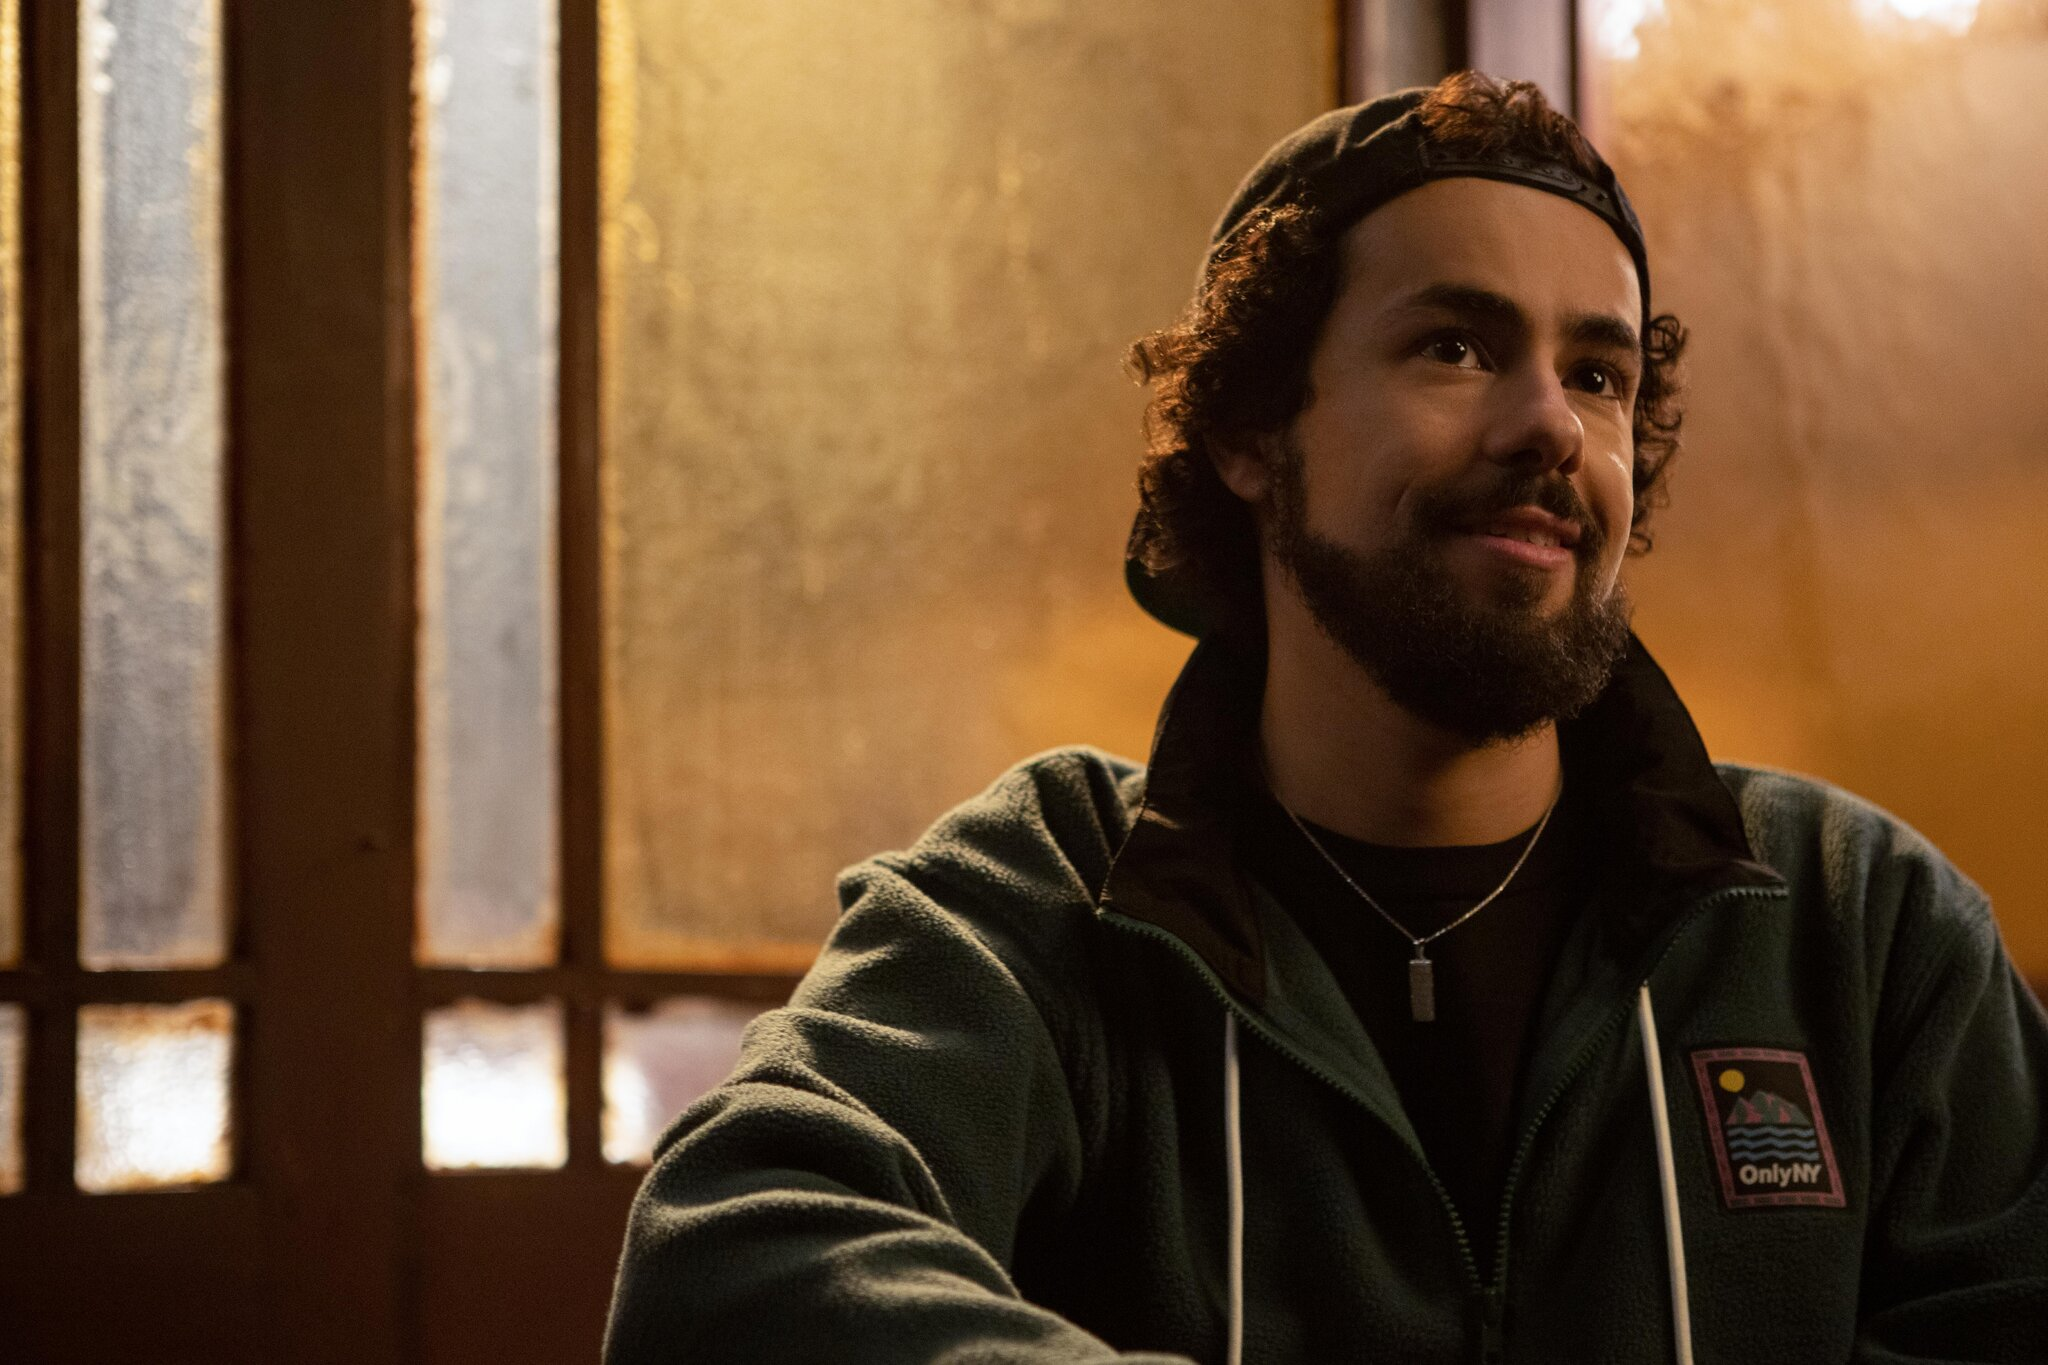 Emmys: Ramy Youssef Thinks Every Network Should Add a Muslim Show